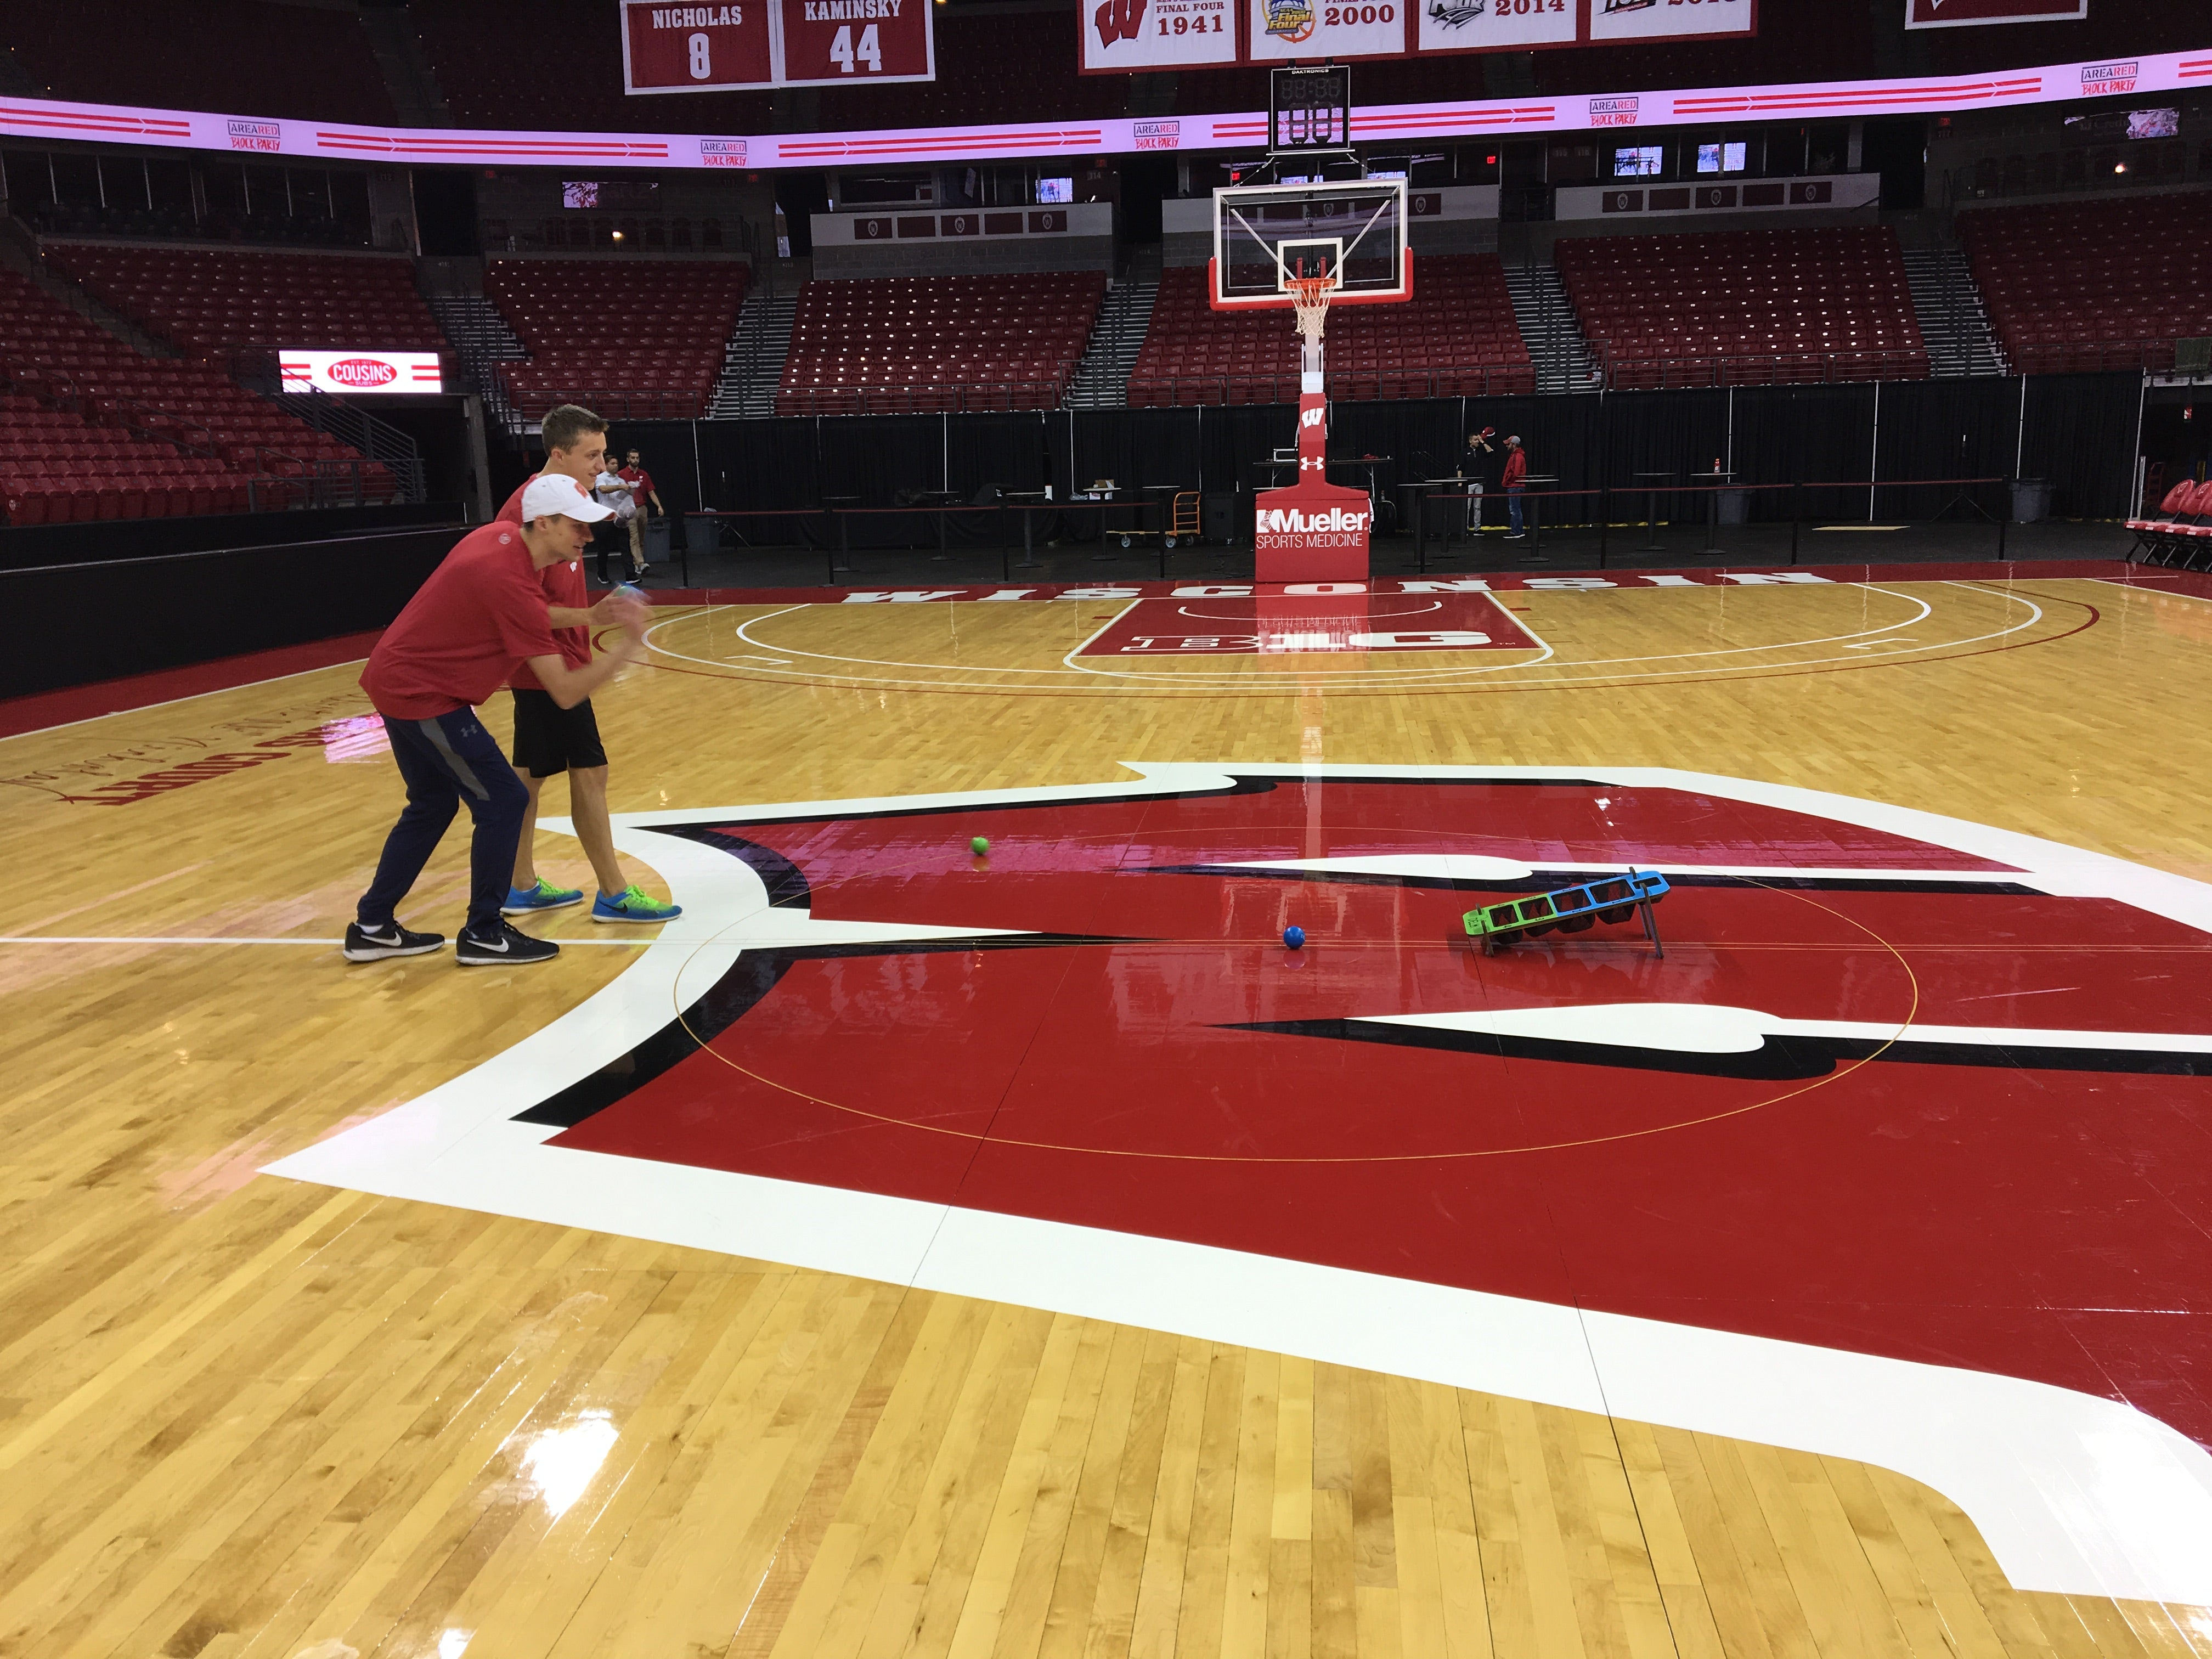 Playing DELU at the Kohl Center